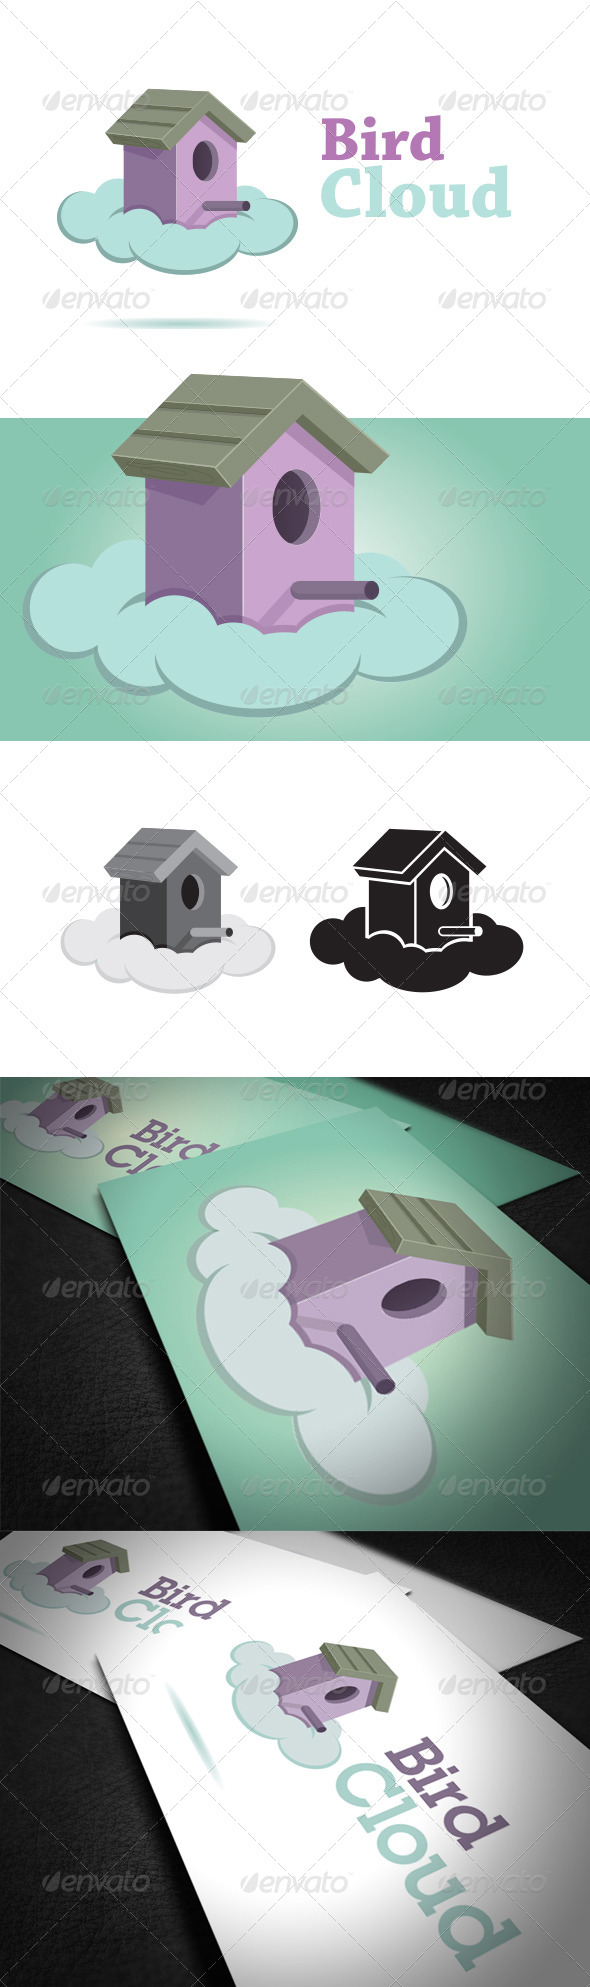 GraphicRiver Bird Cloud Logo Template 6587062